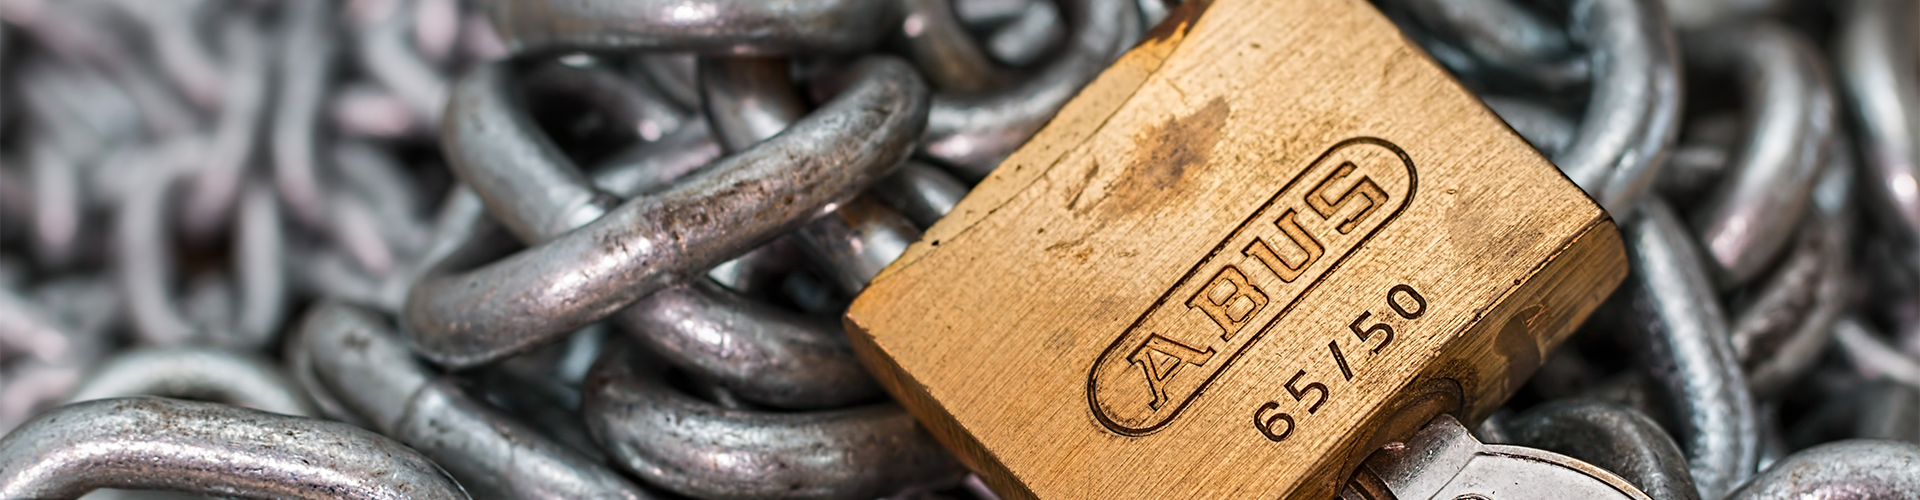 Keeping your website safe and secure